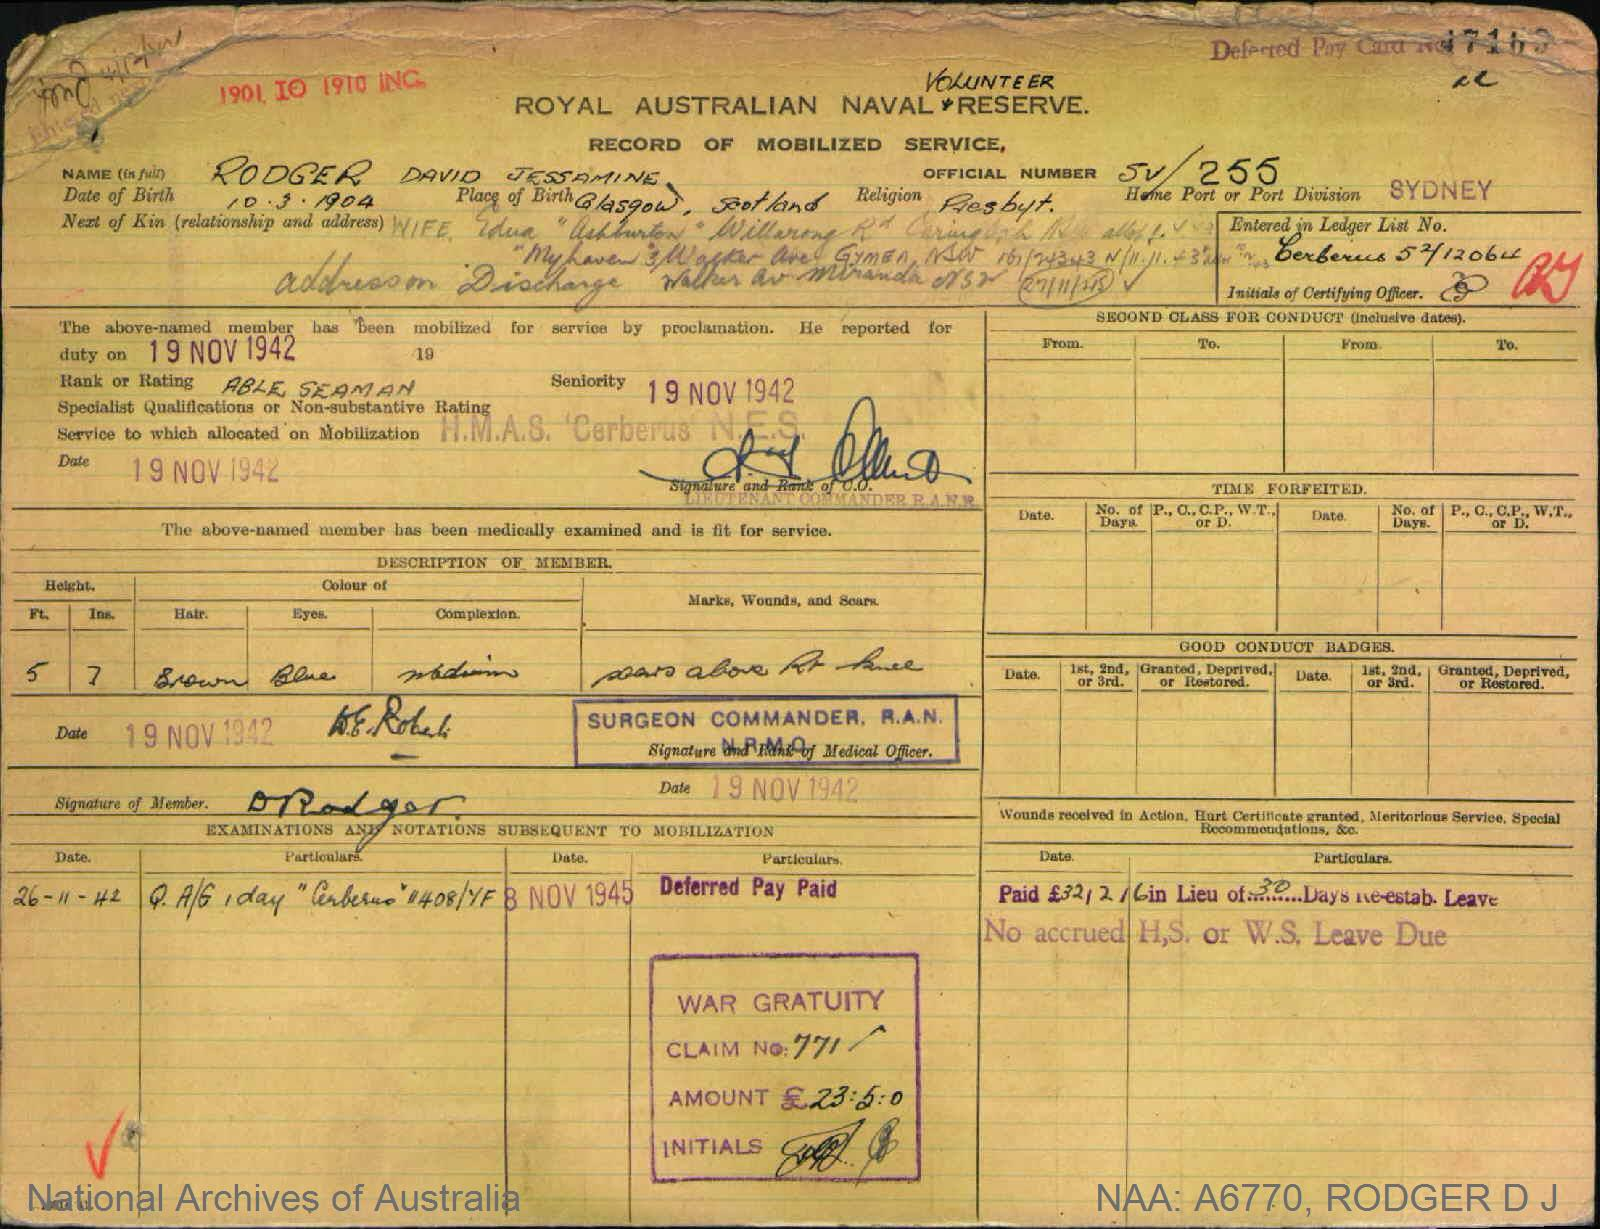 RODGER DAVID JESSAMINE : Service Number - SV/255 : Date of birth - 10 Mar 1904 : Place of birth - GLASGOW SCOTLAND : Place of enlistment - SYDNEY : Next of Kin - EDNA